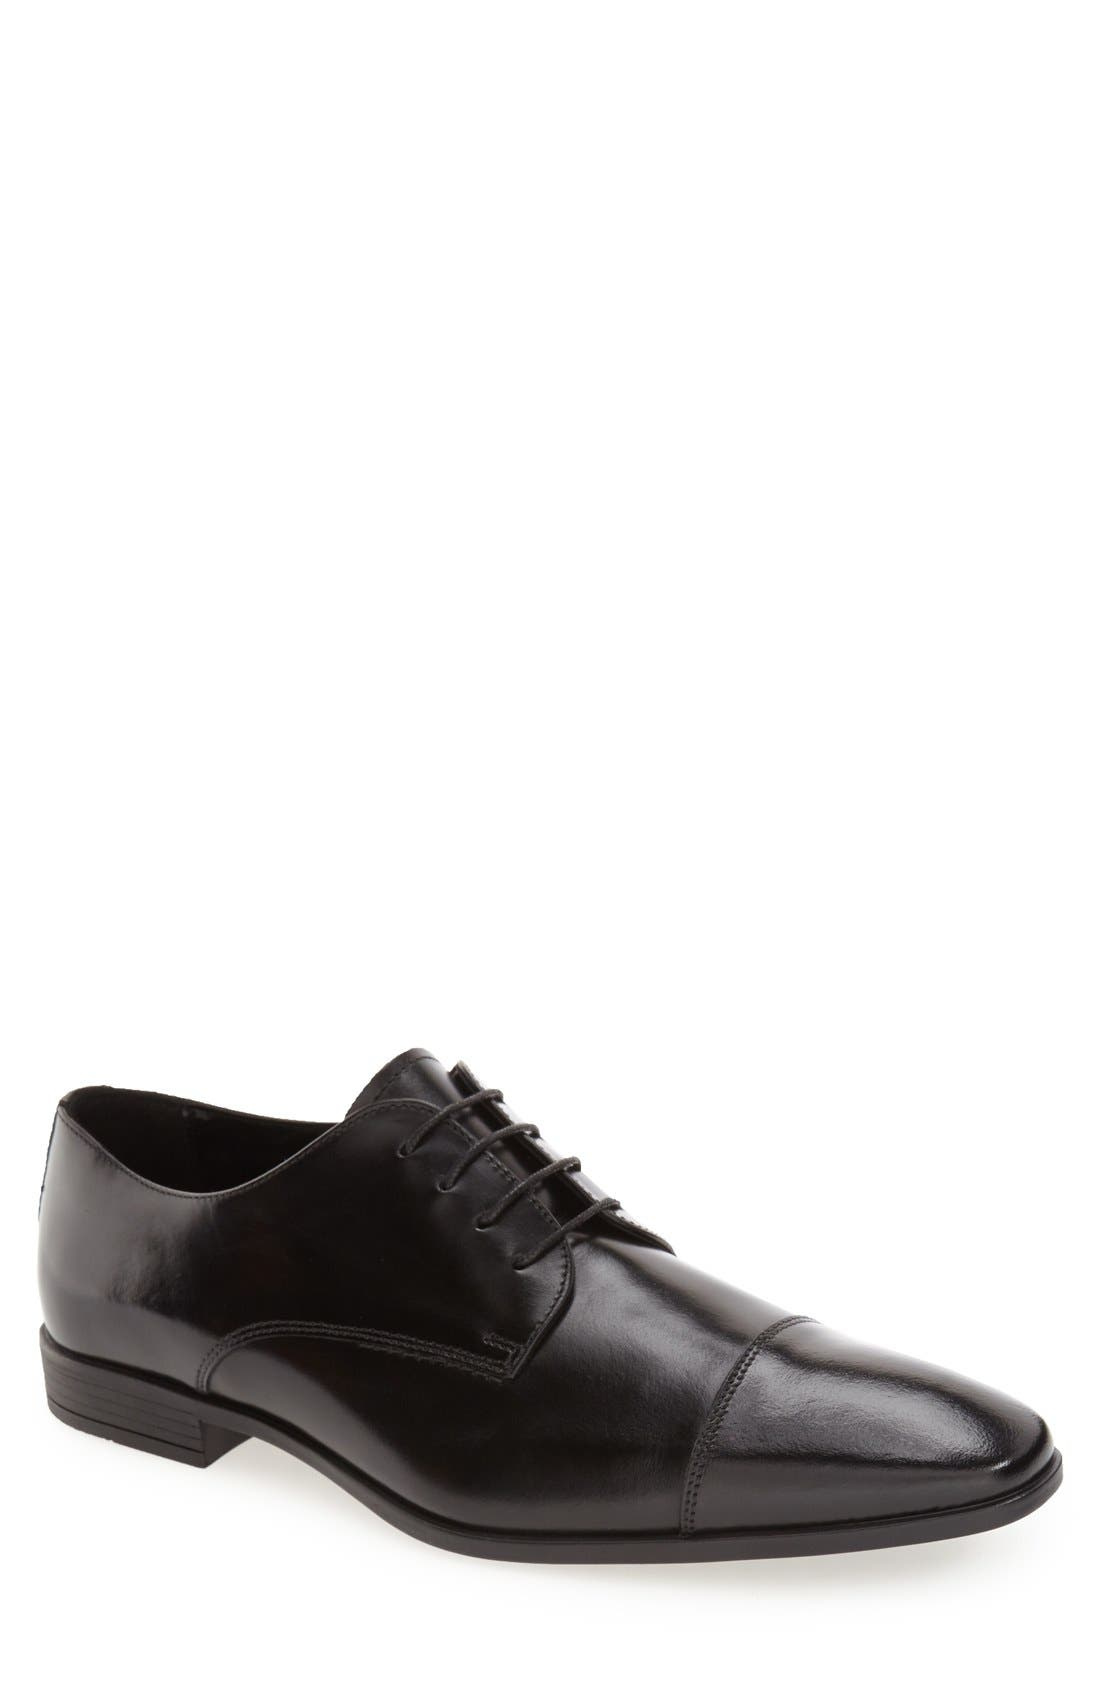 THE RAIL 'Stark' Cap Toe Derby, Main, color, BLACK LEATHER